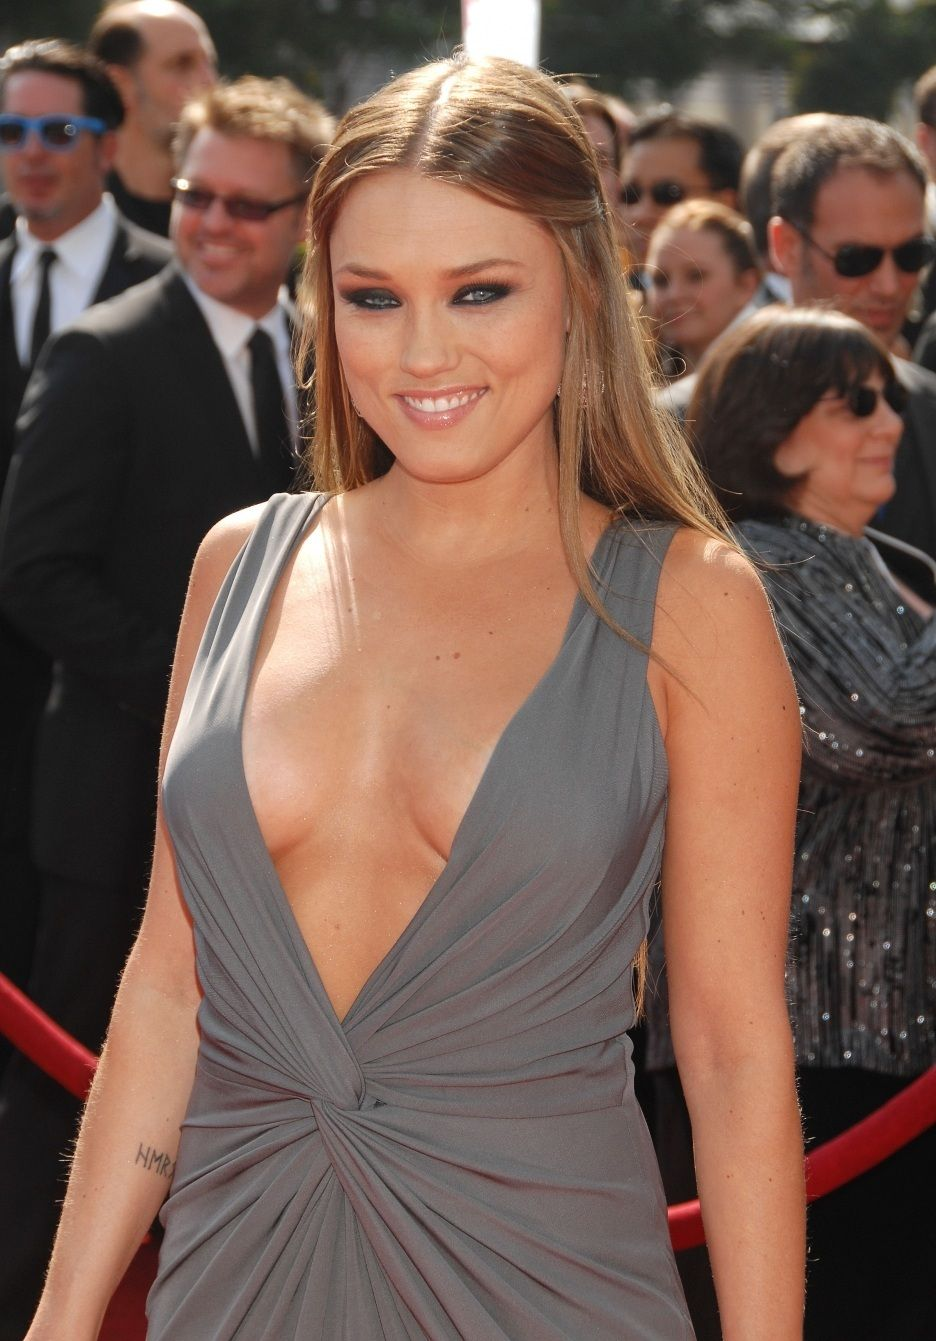 clare grant wikiclare grant wedding, clare grant seth green, clare grant instagram, clare grant, clare grant height, clare grant wiki, clare grant star wars, clare grant and seth green wedding, clare grant imdb, clare grant net worth, clare grant playboy, clare grant measurements, clare grant pics